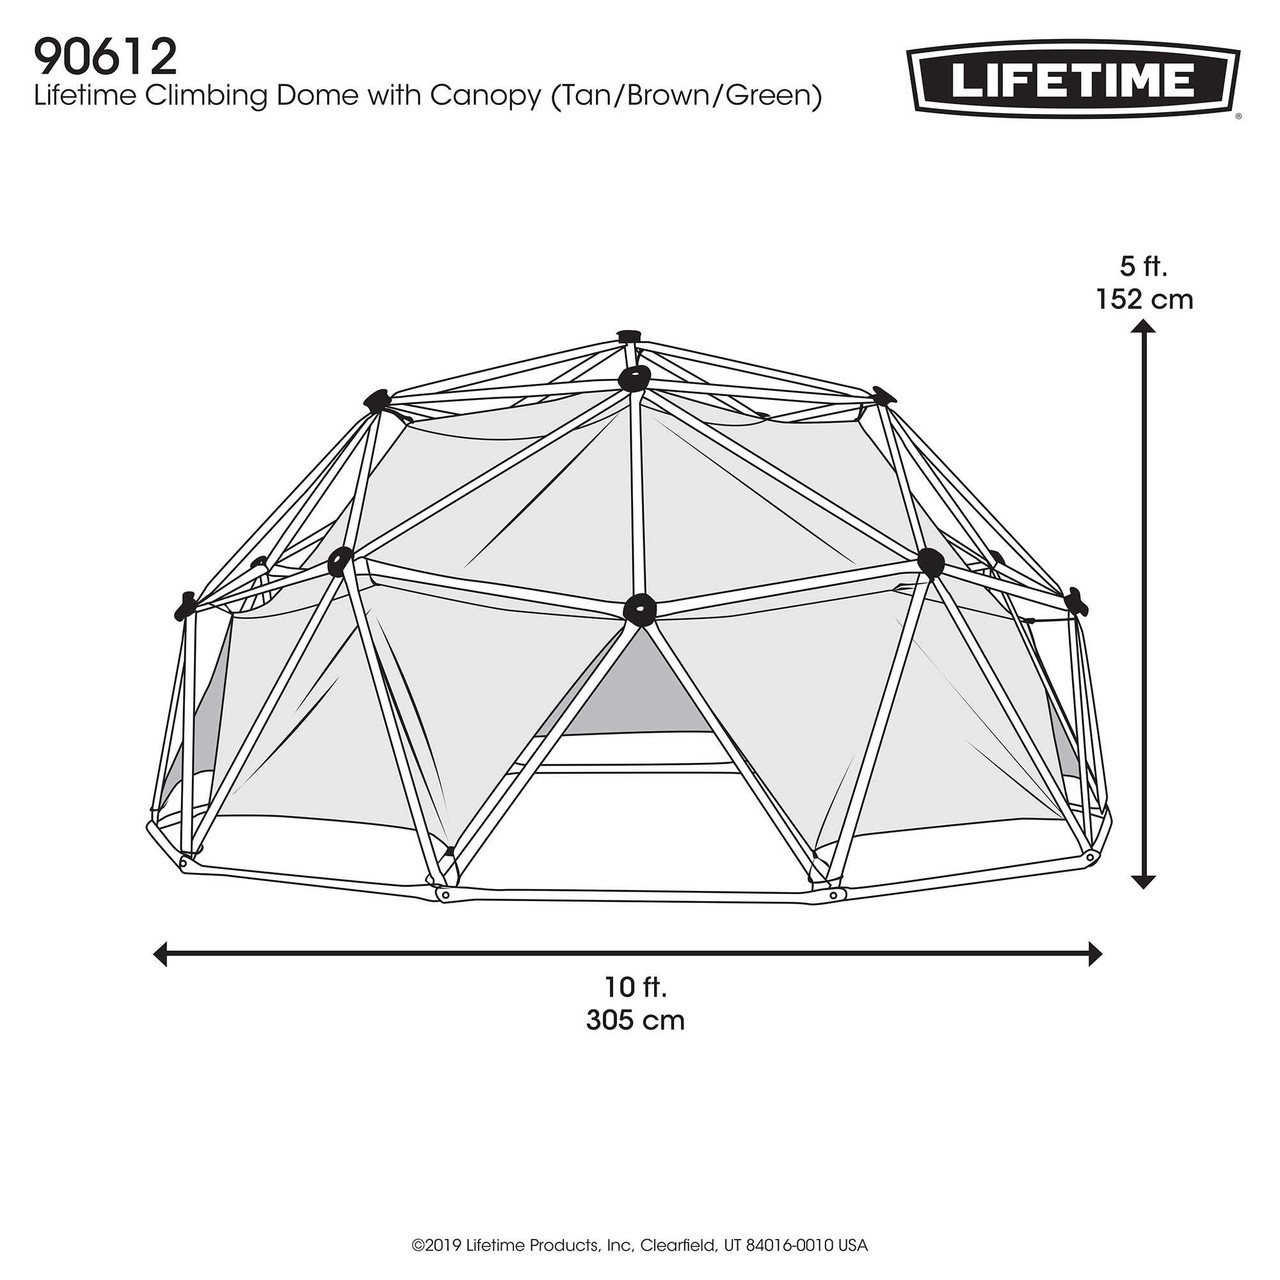 Lifetime Geo Dome Climber with Tent - Dimensions